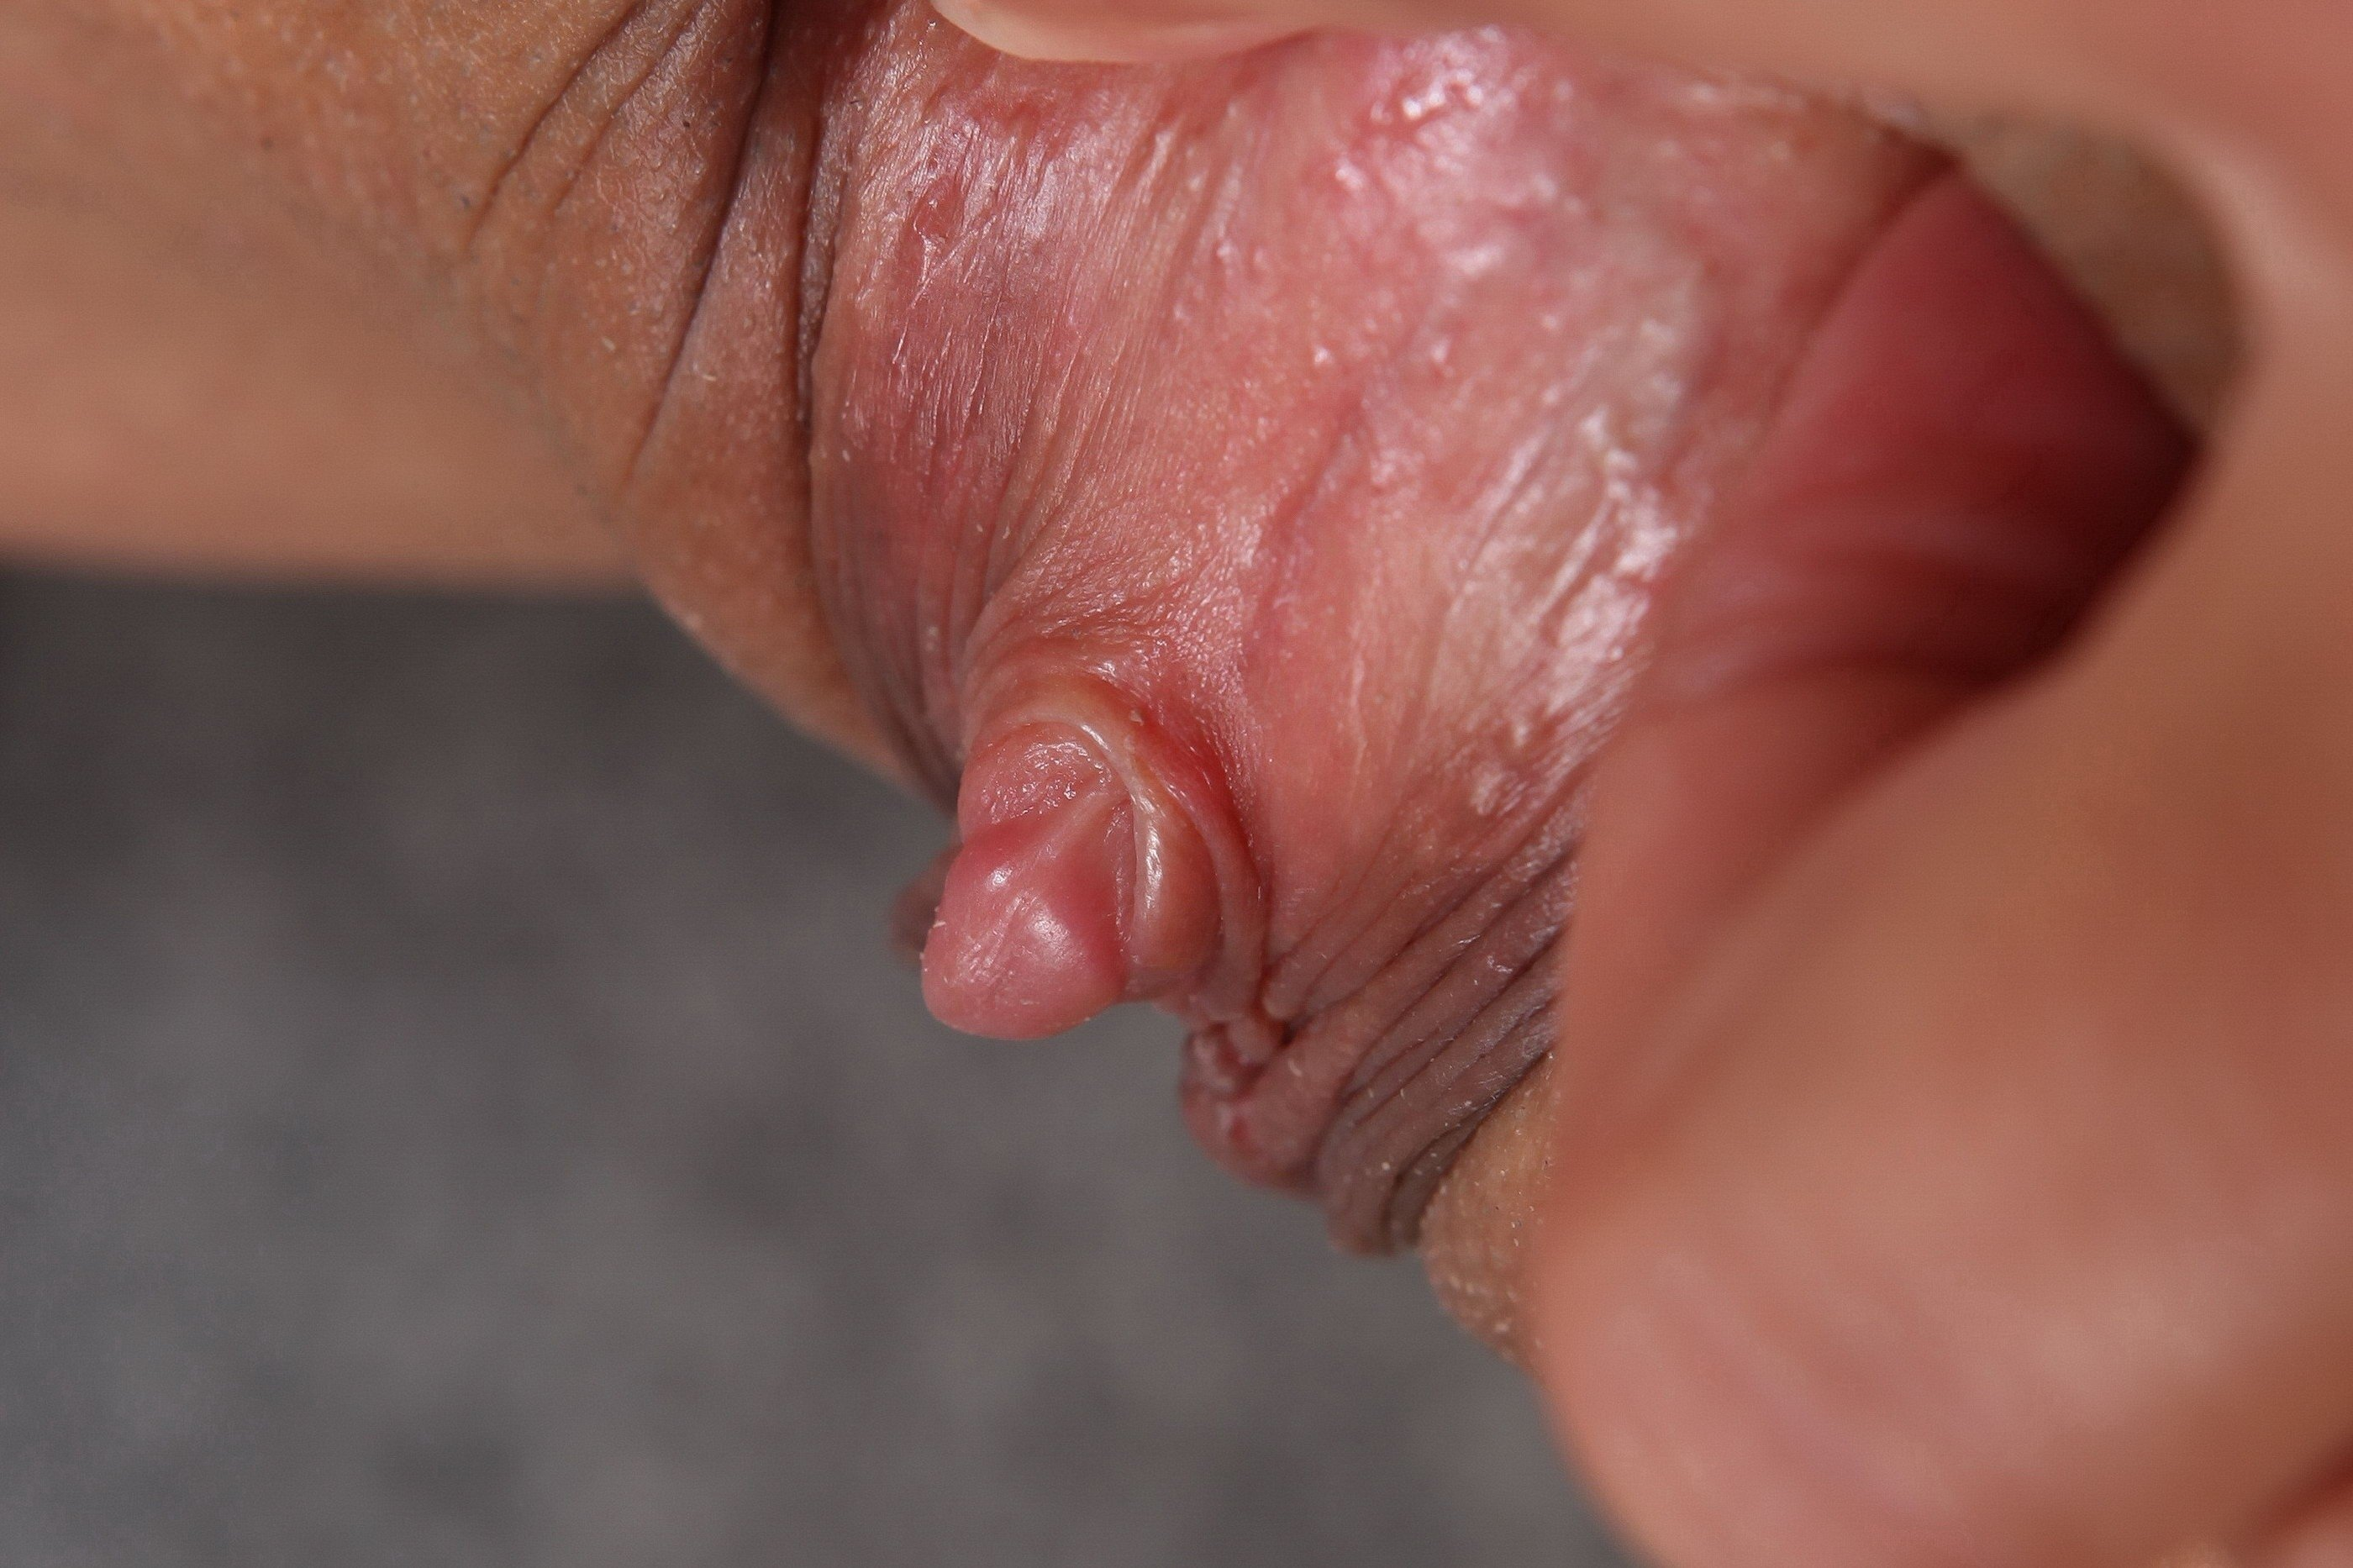 thrush-clitoris-sex-tera-patrik